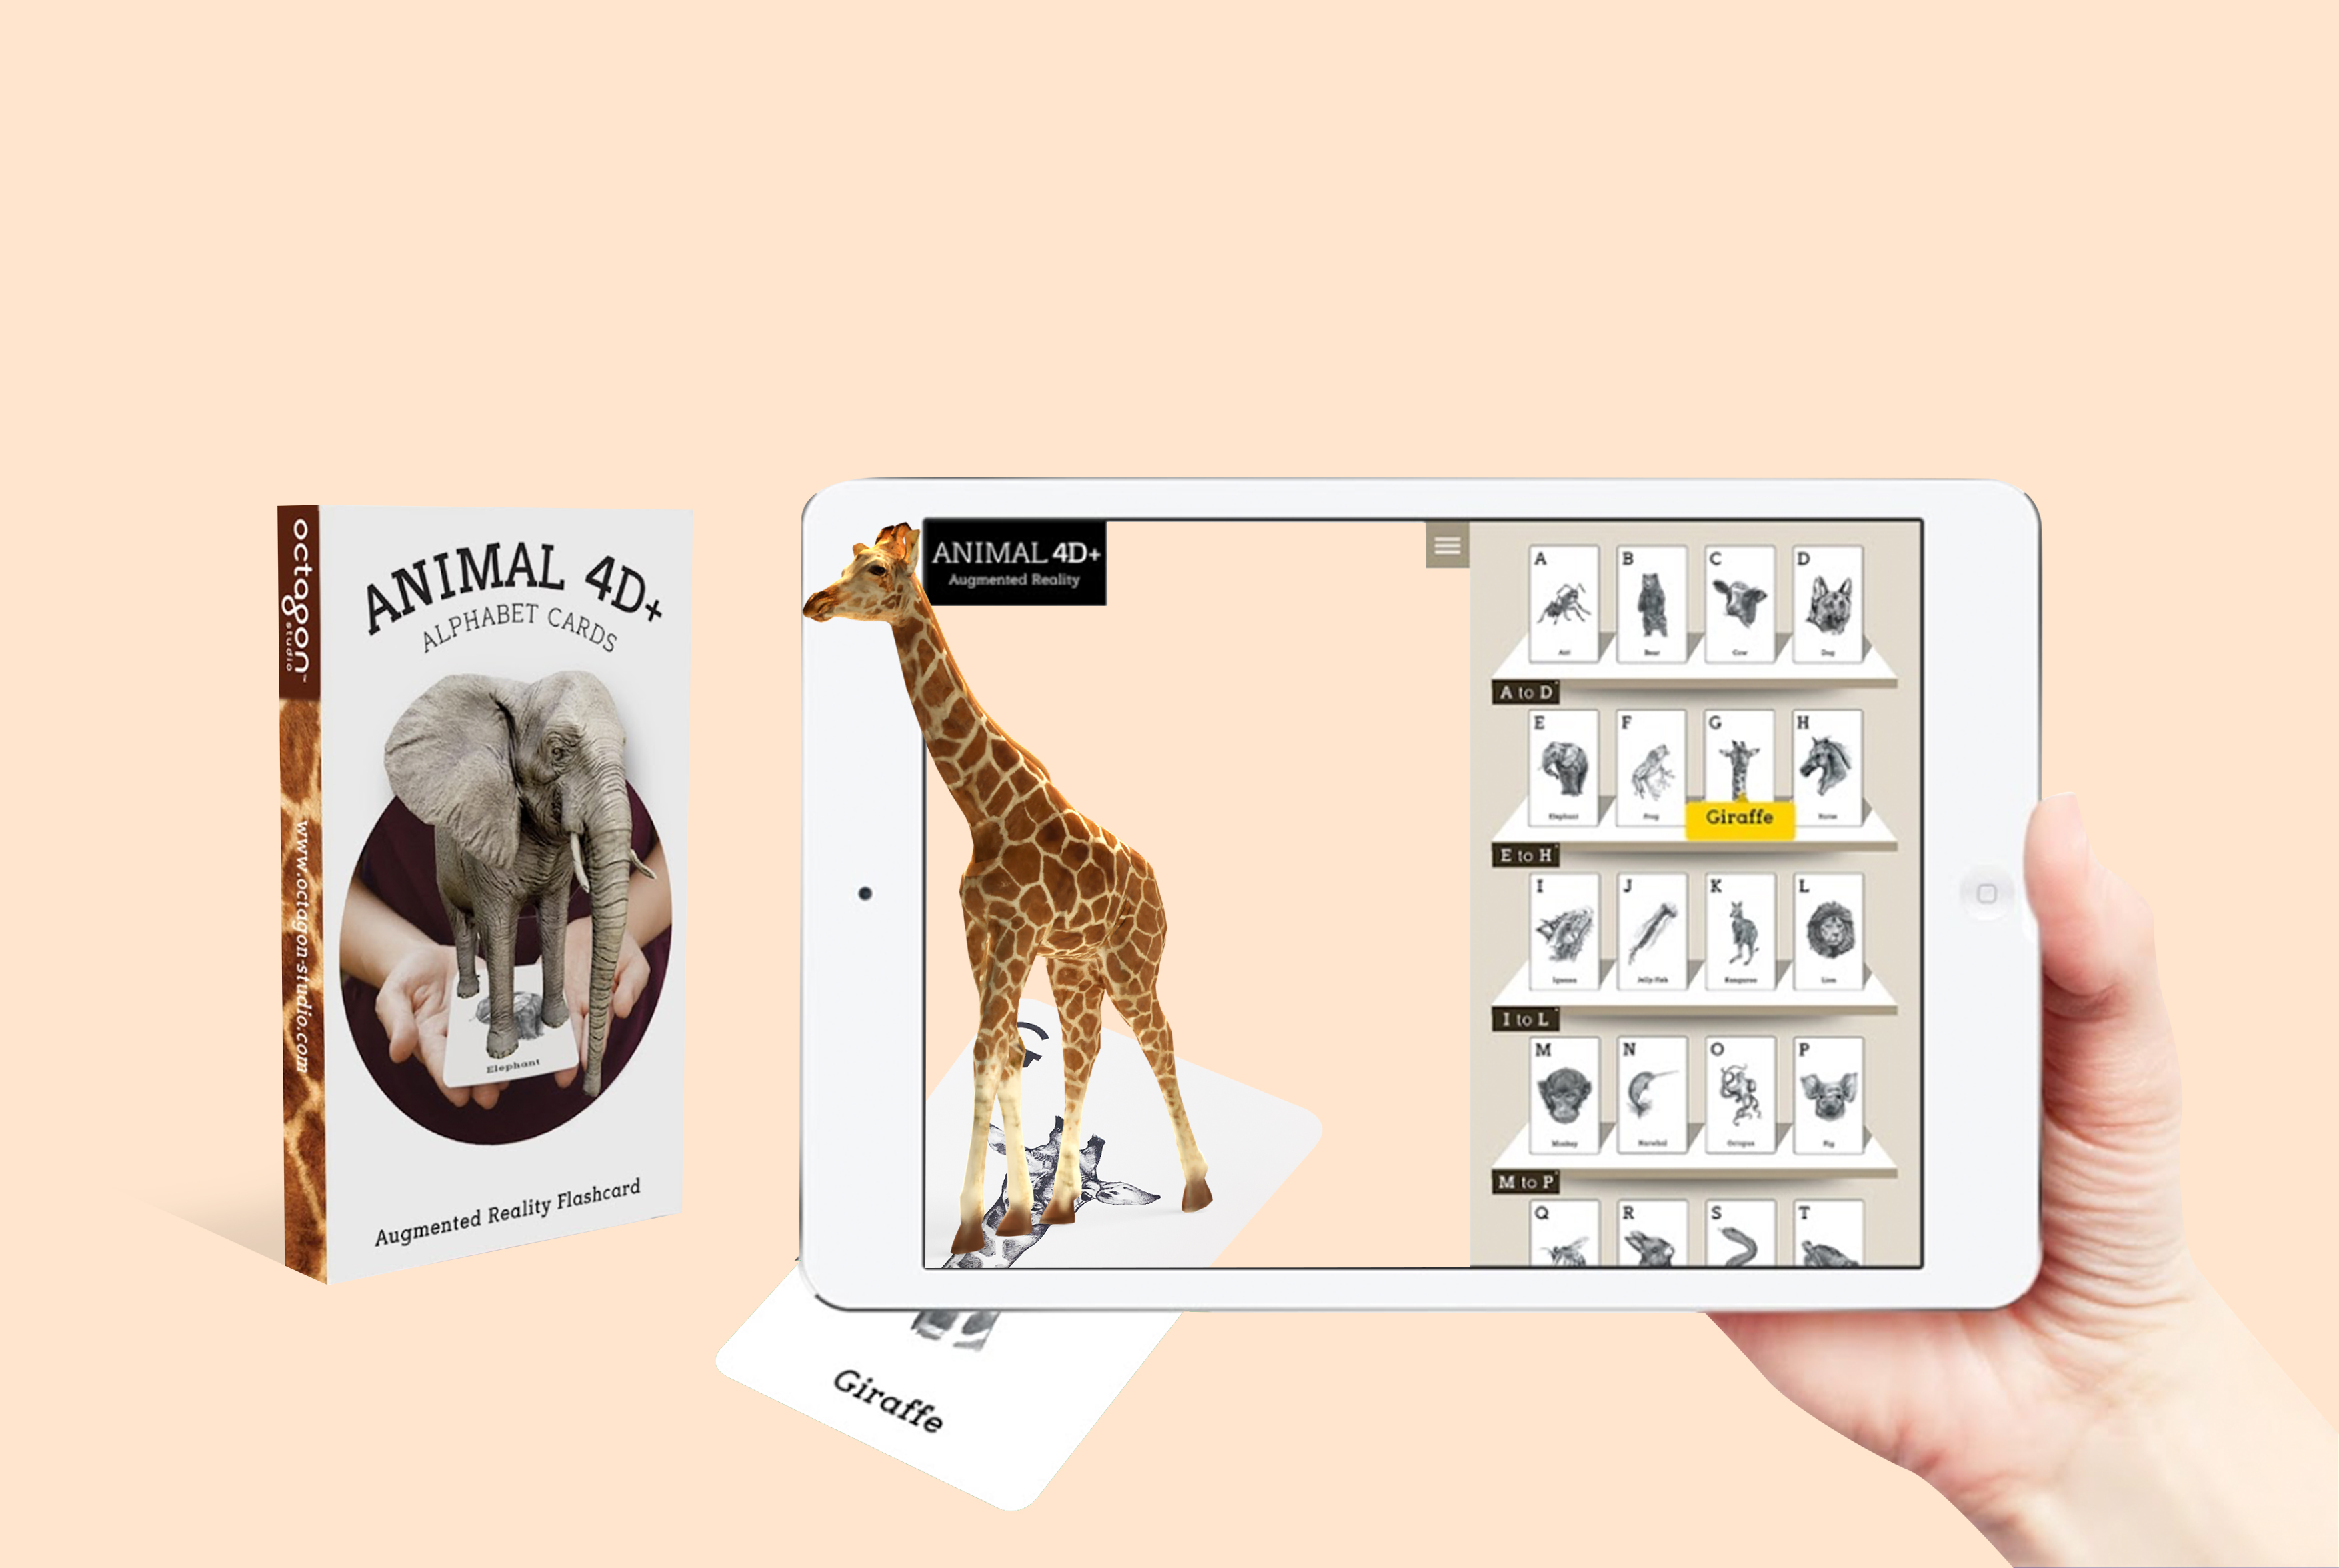 Octagon Studio Launched Animal 4D+ App! |By Octagon Studio